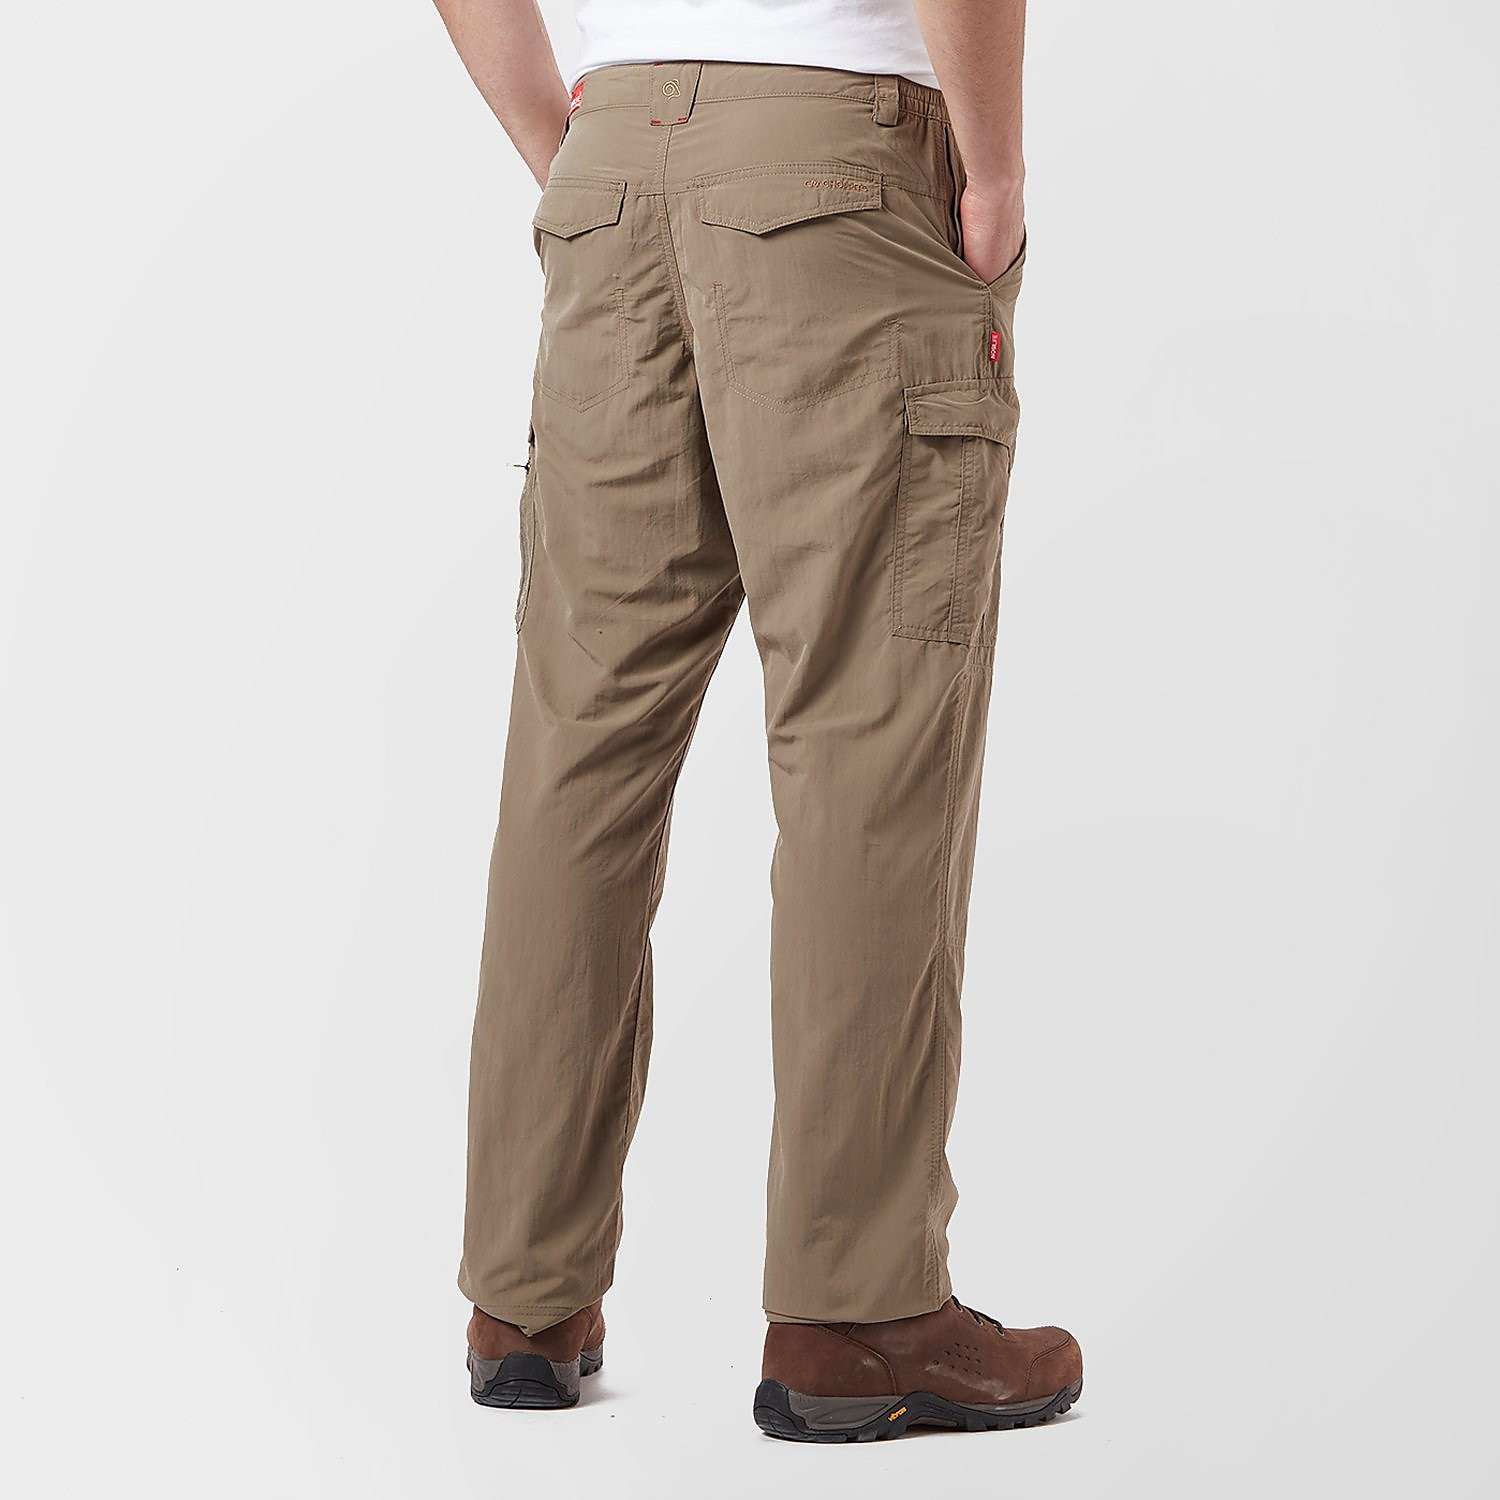 Craghoppers NosiLife Cargo Men's Trousers